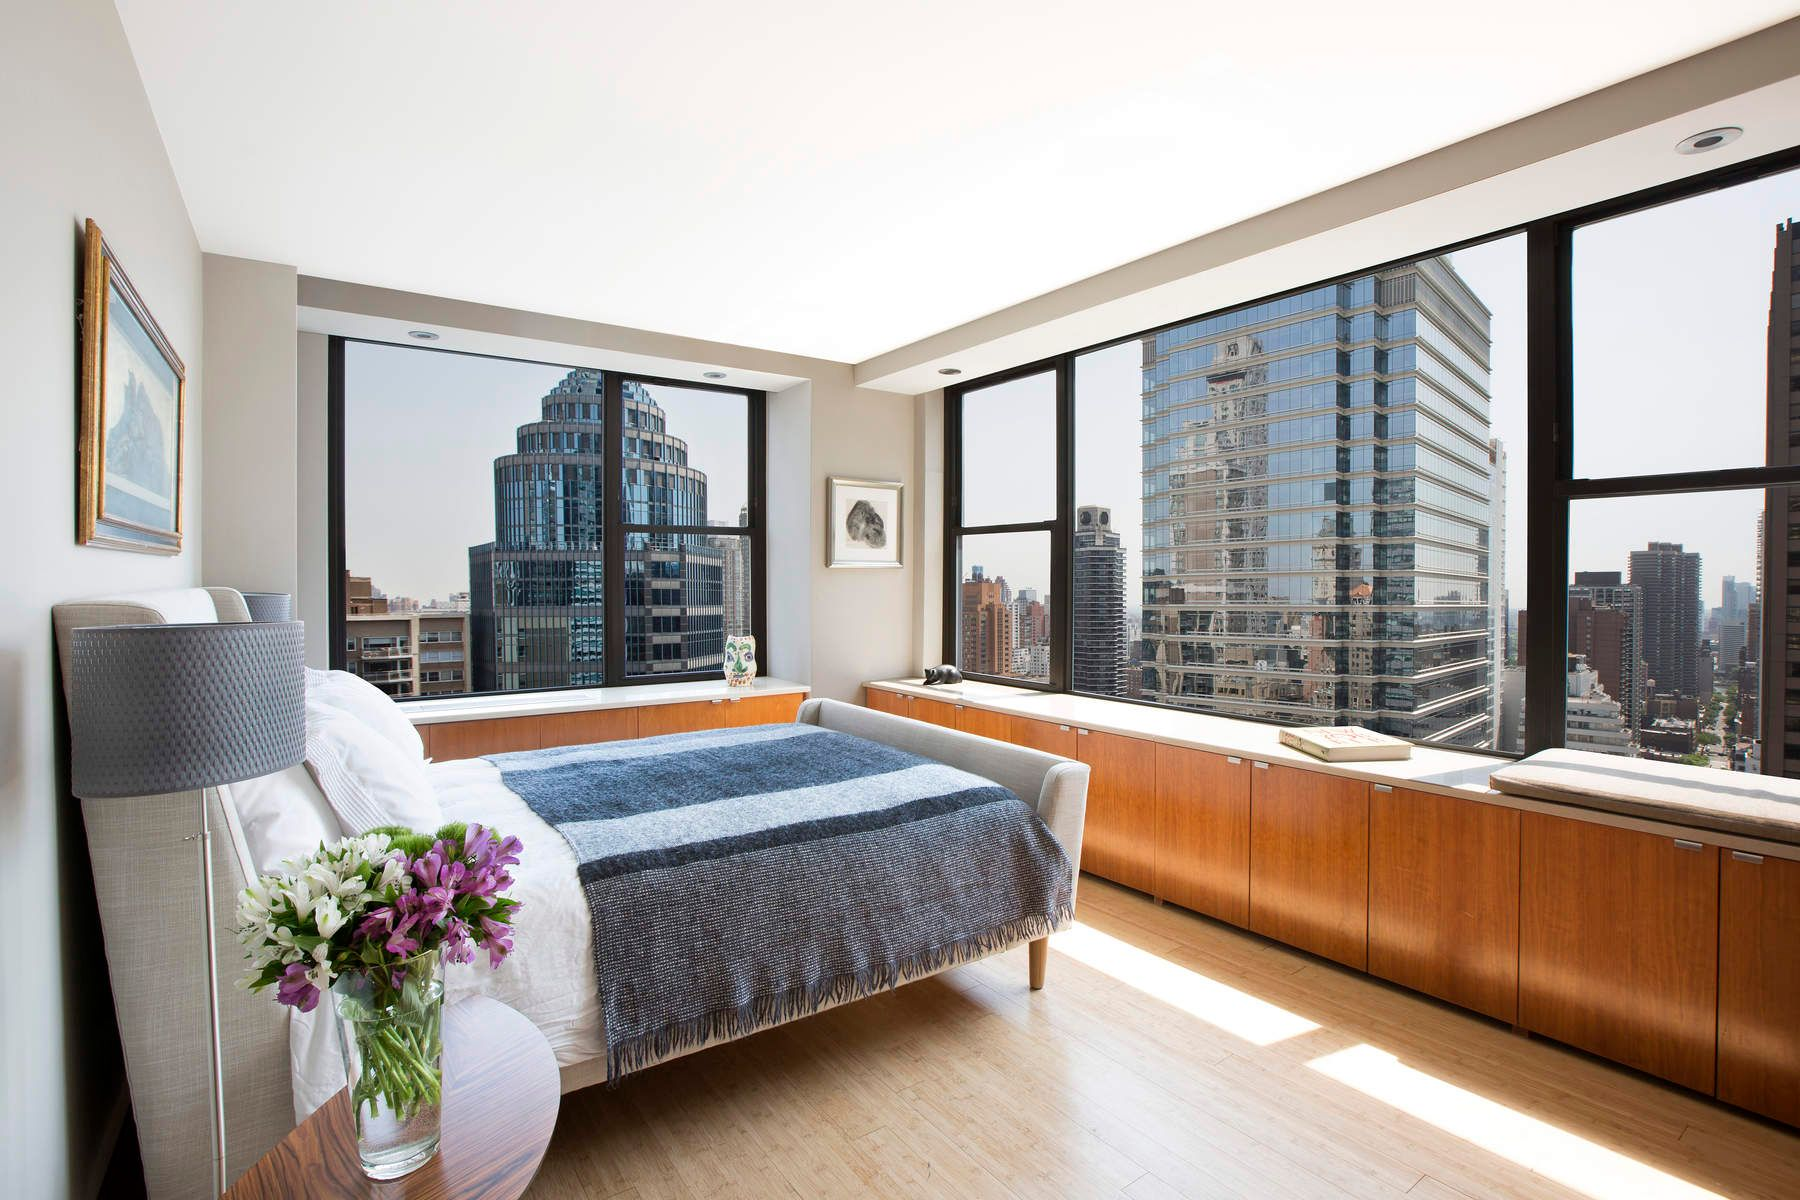 Martine Capdevielle_Luxury Real Estate NYC_117 EAST 57TH STREET APT 34h3.jpg